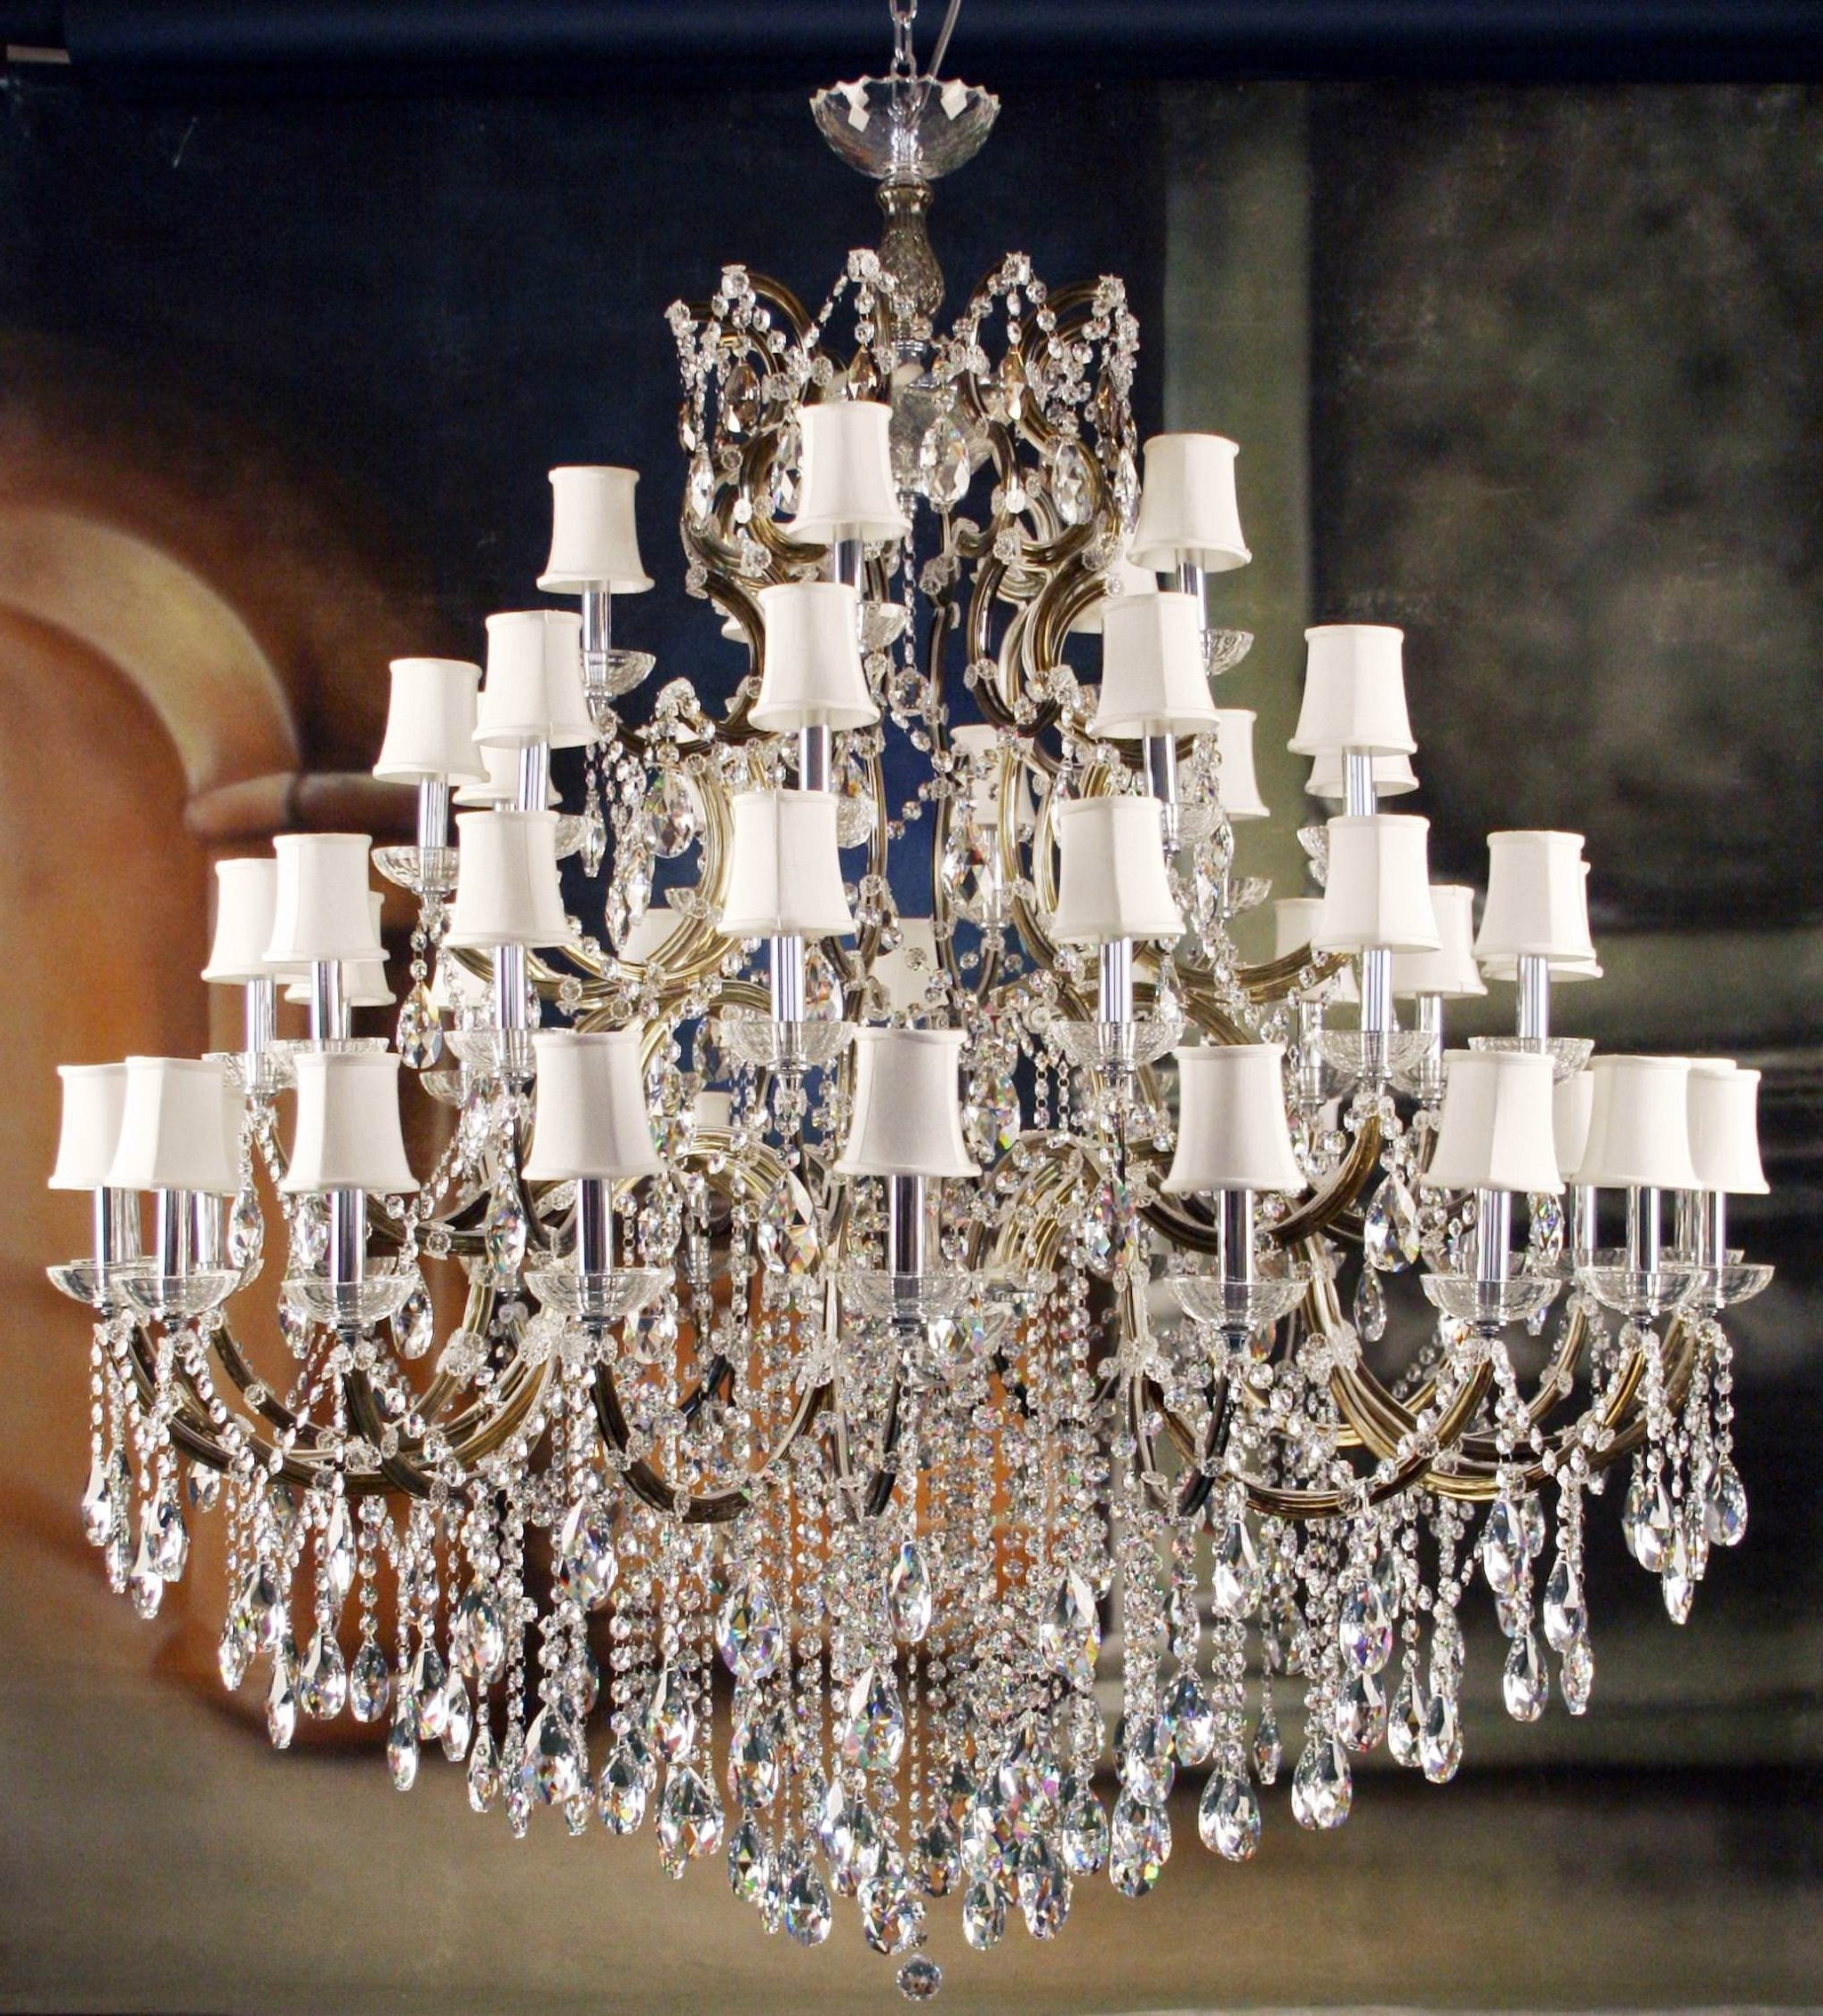 Famous Light : Chandelier Store Kichler Vanity Lights For Kids Room In Wall Mounted Bathroom Chandeliers (View 14 of 15)